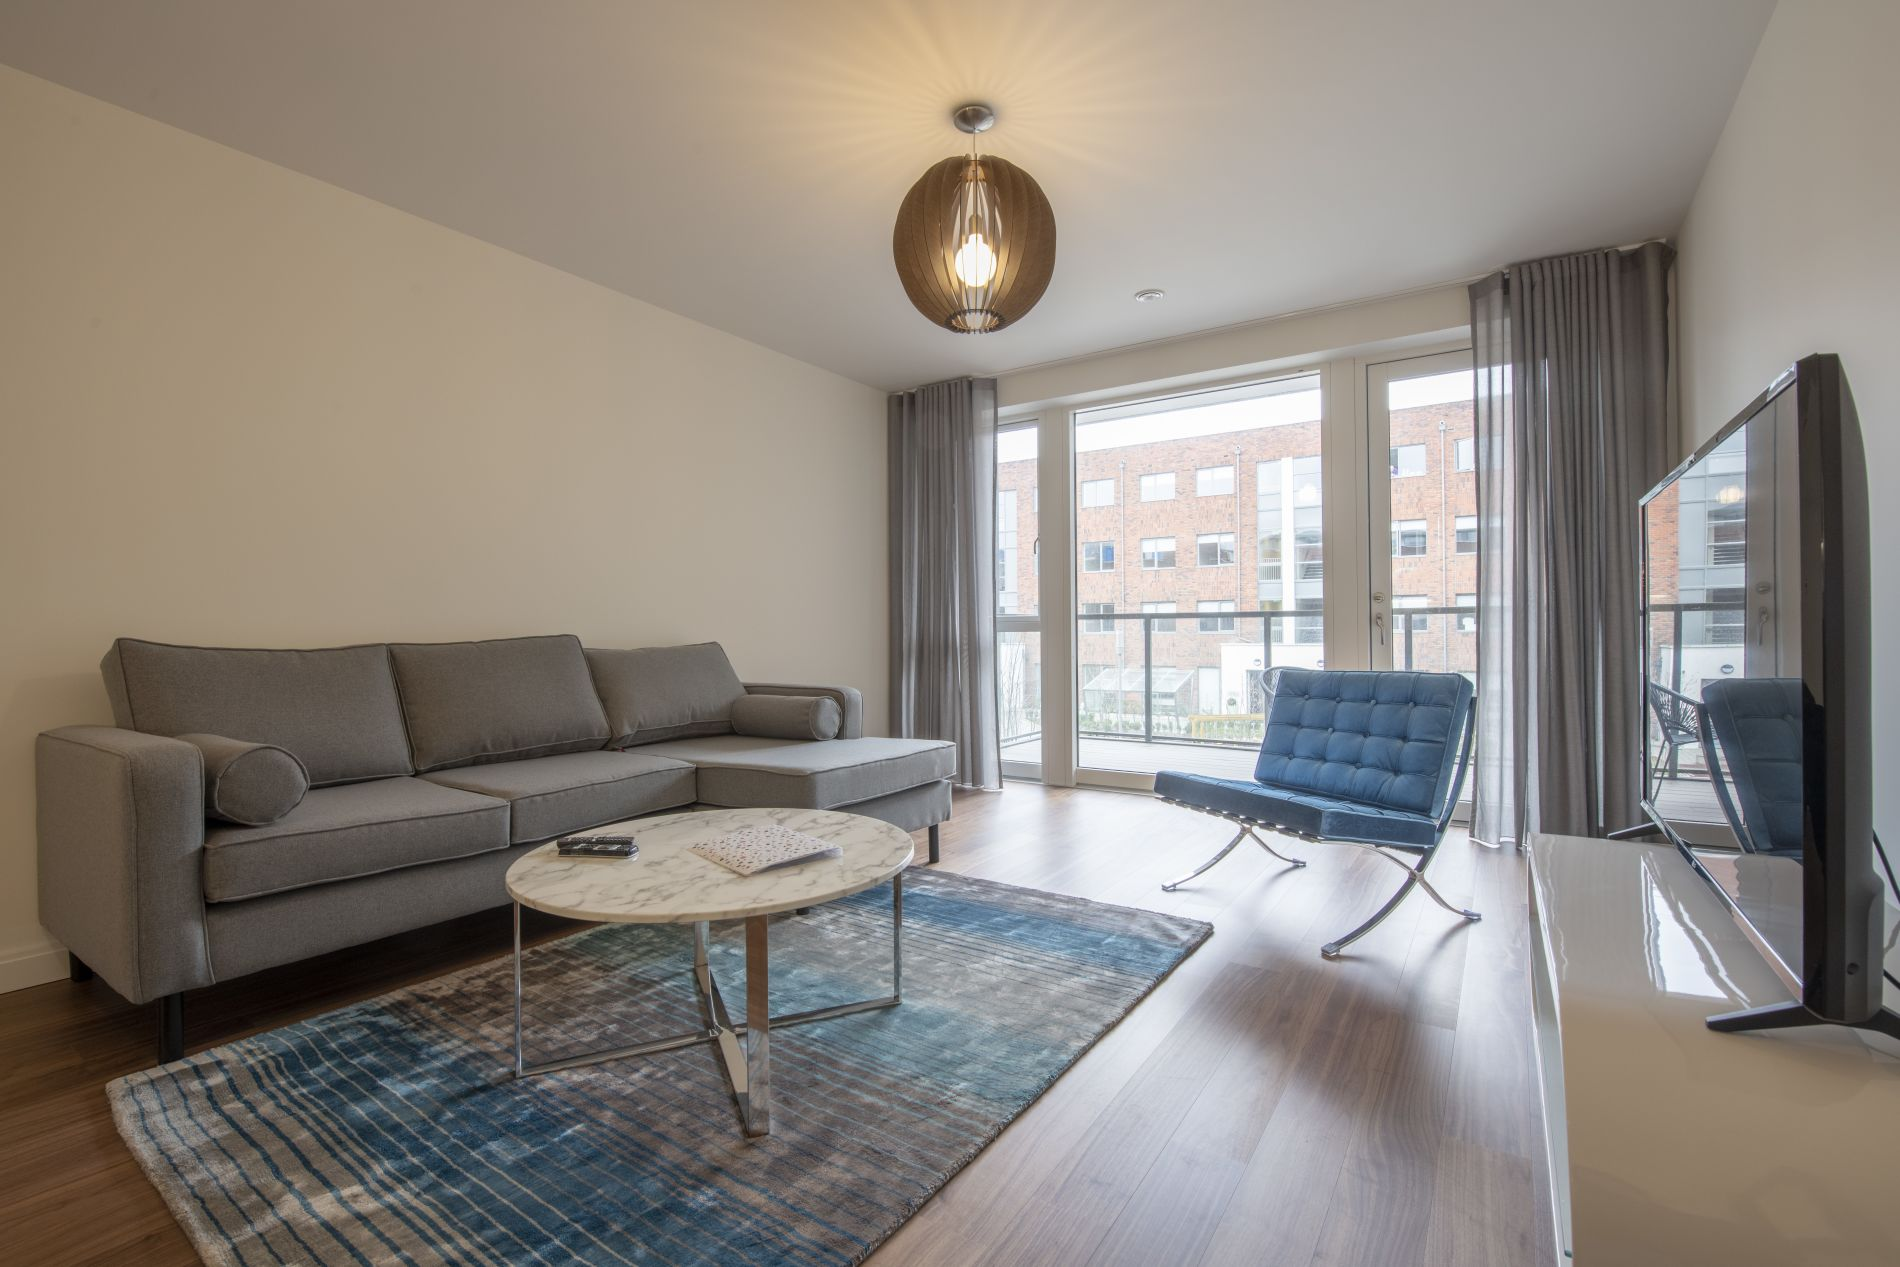 Affordable luxury serviced accommodation in dublin with a private balcony